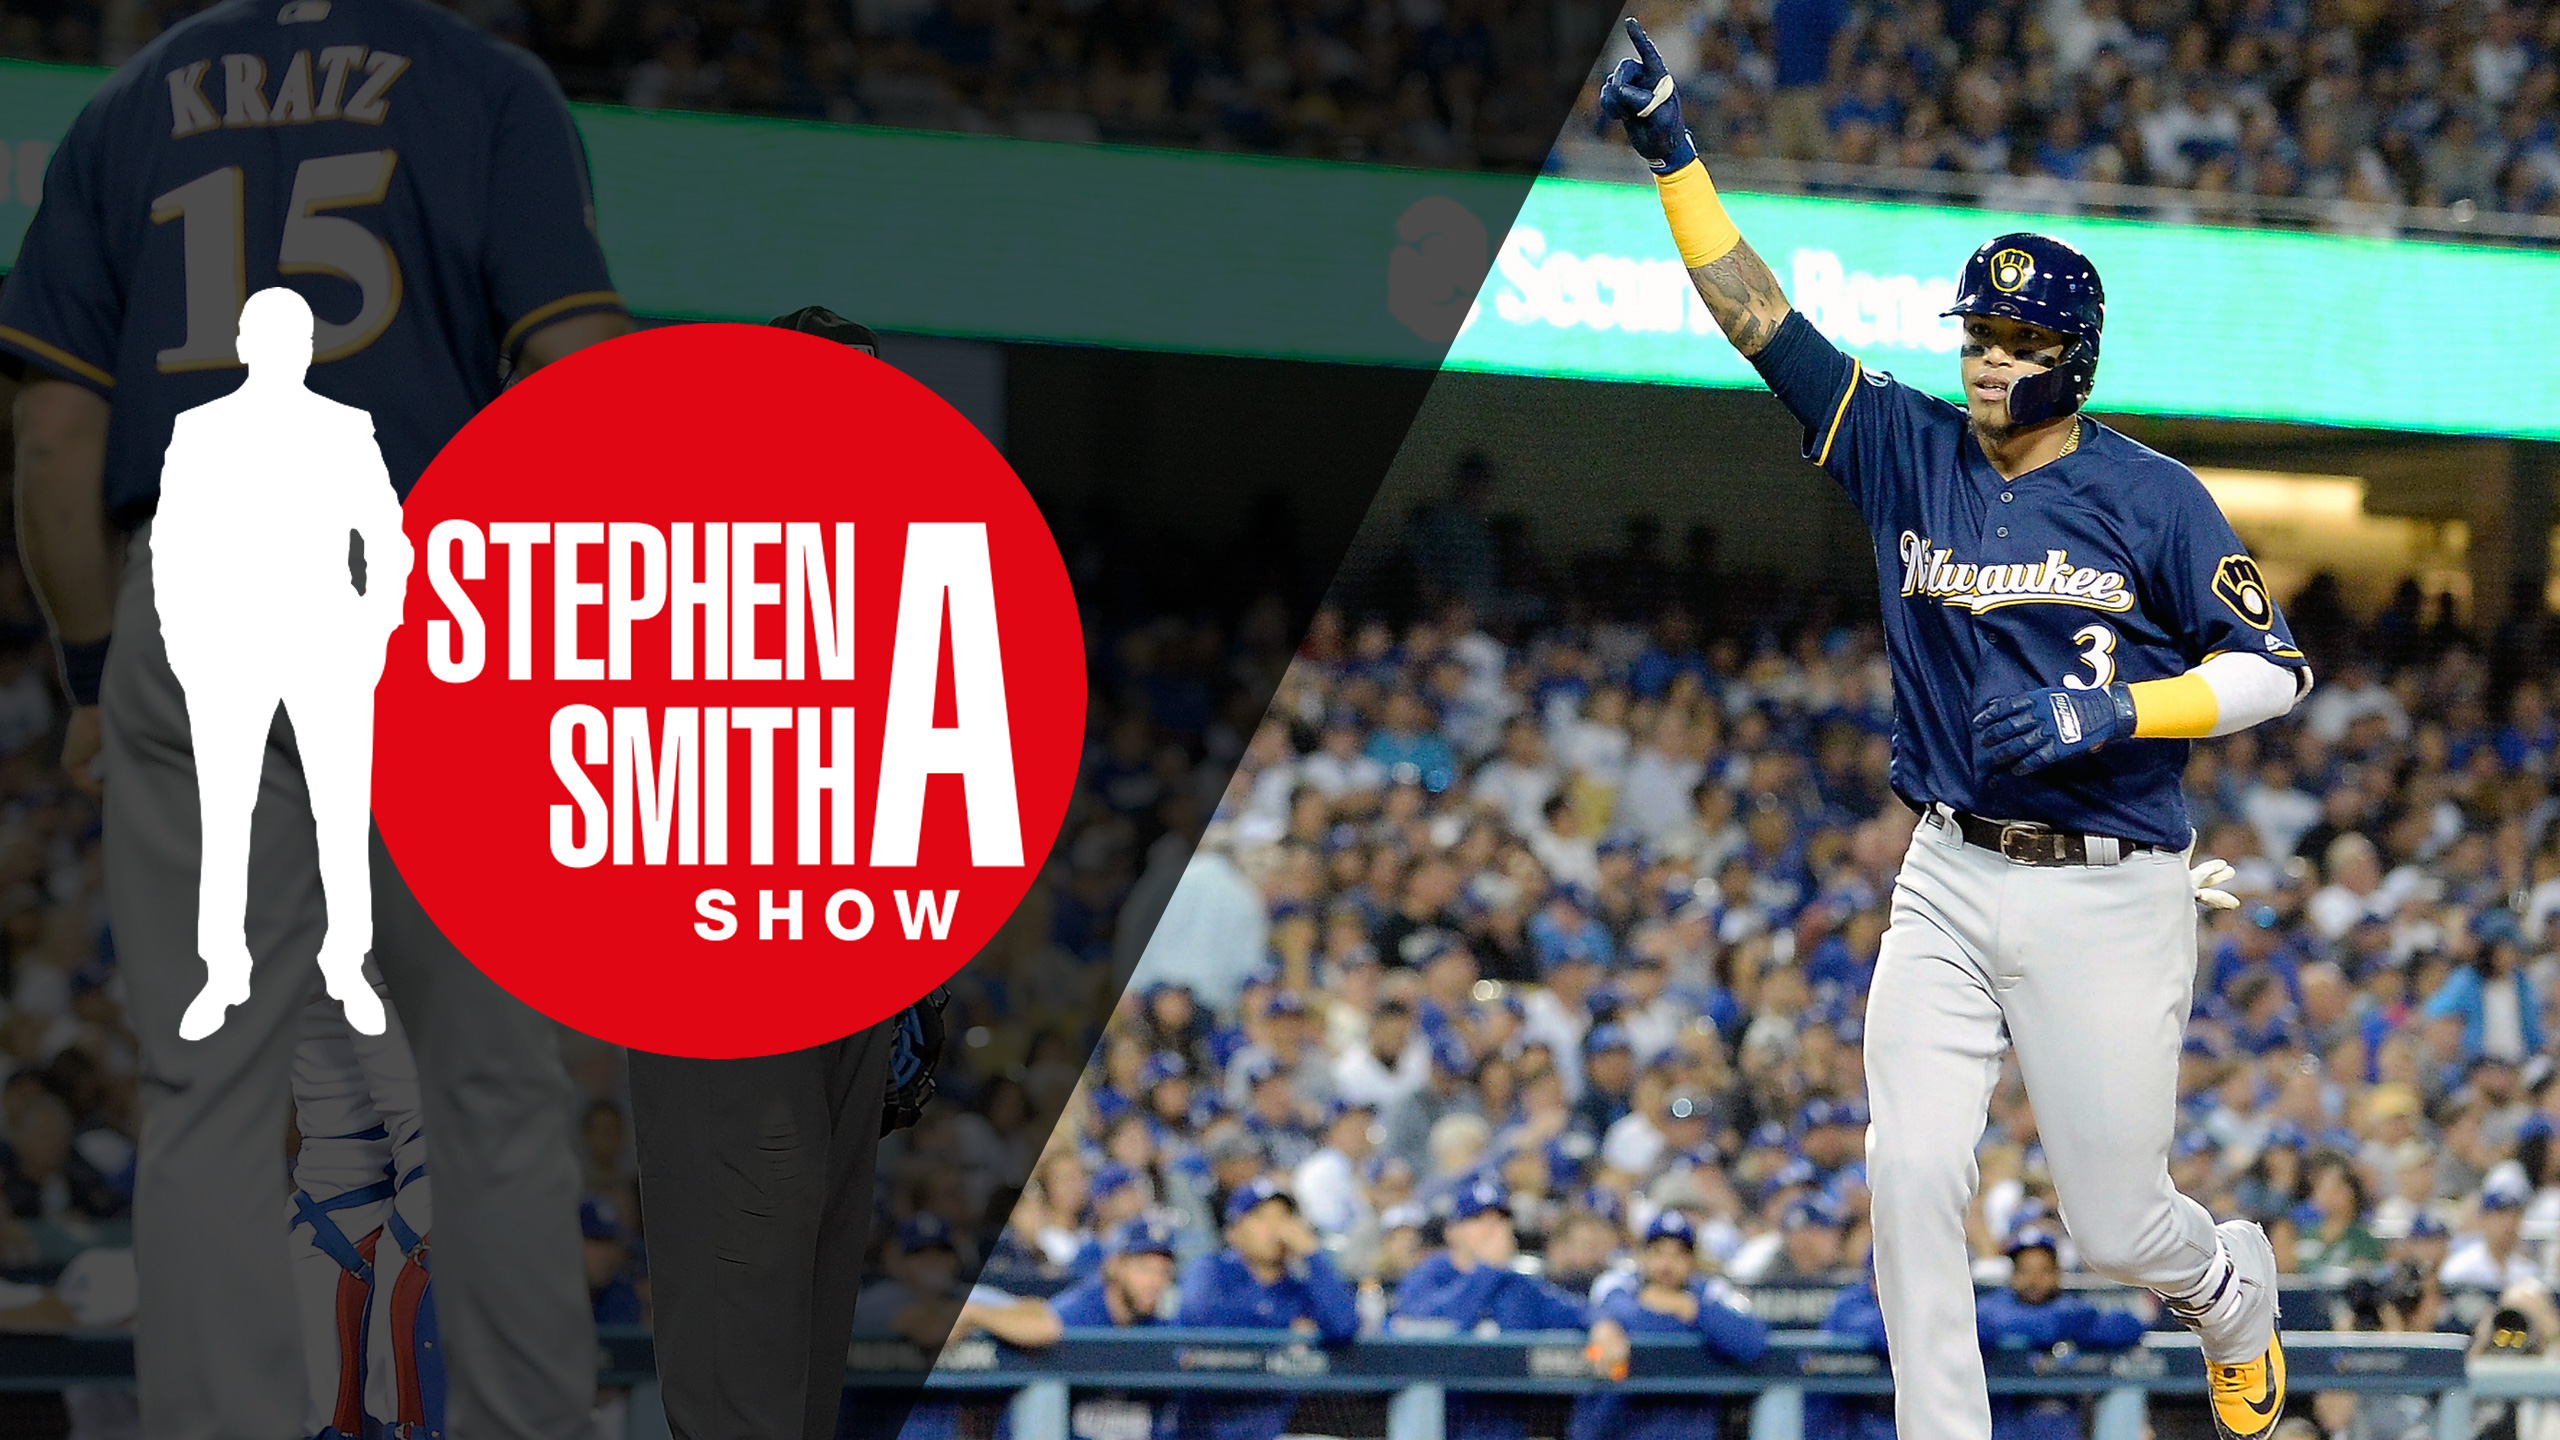 Tue, 10/16 - The Stephen A. Smith Show